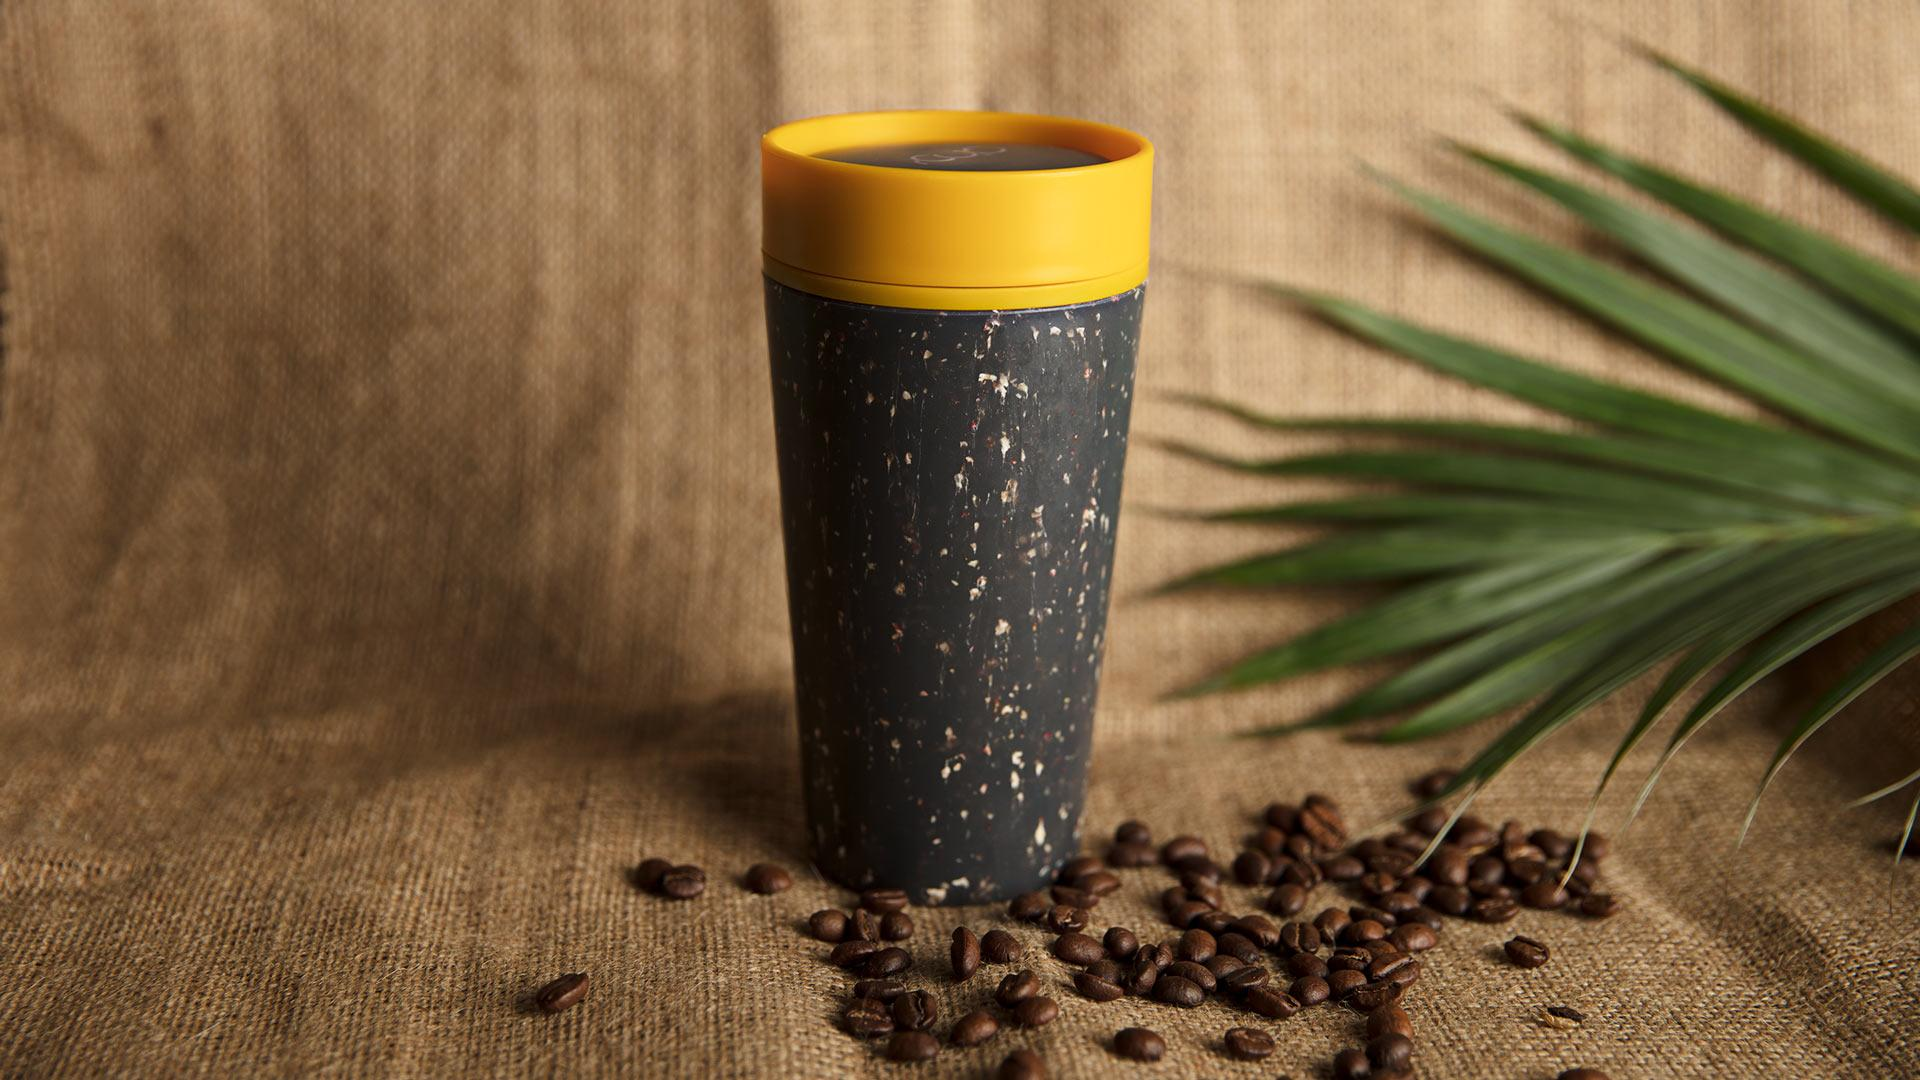 rCUP's reusable coffee cup in mustard and black